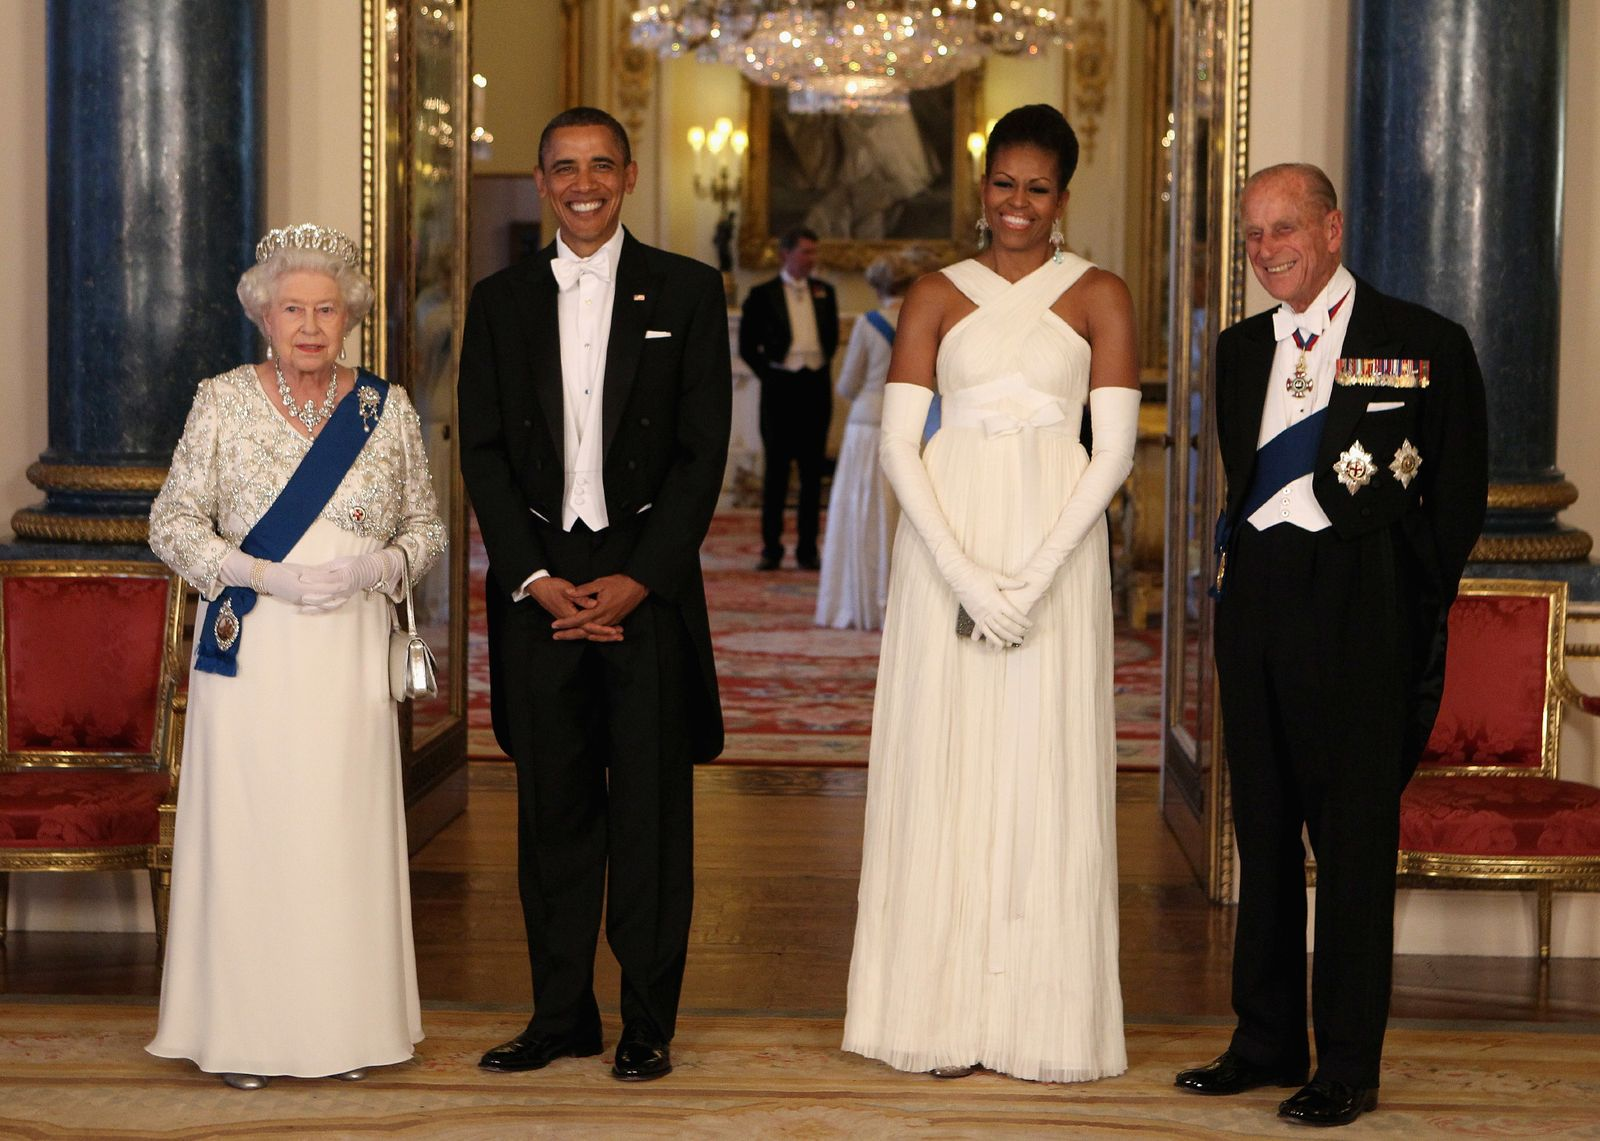 Queen Elizabeth II poses with Former President Barack Obama, Michelle Obama and Prince Philip, in the Music Room of Buckingham Palace on May 24, 2011 in London, England. | Photo: Getty Images.